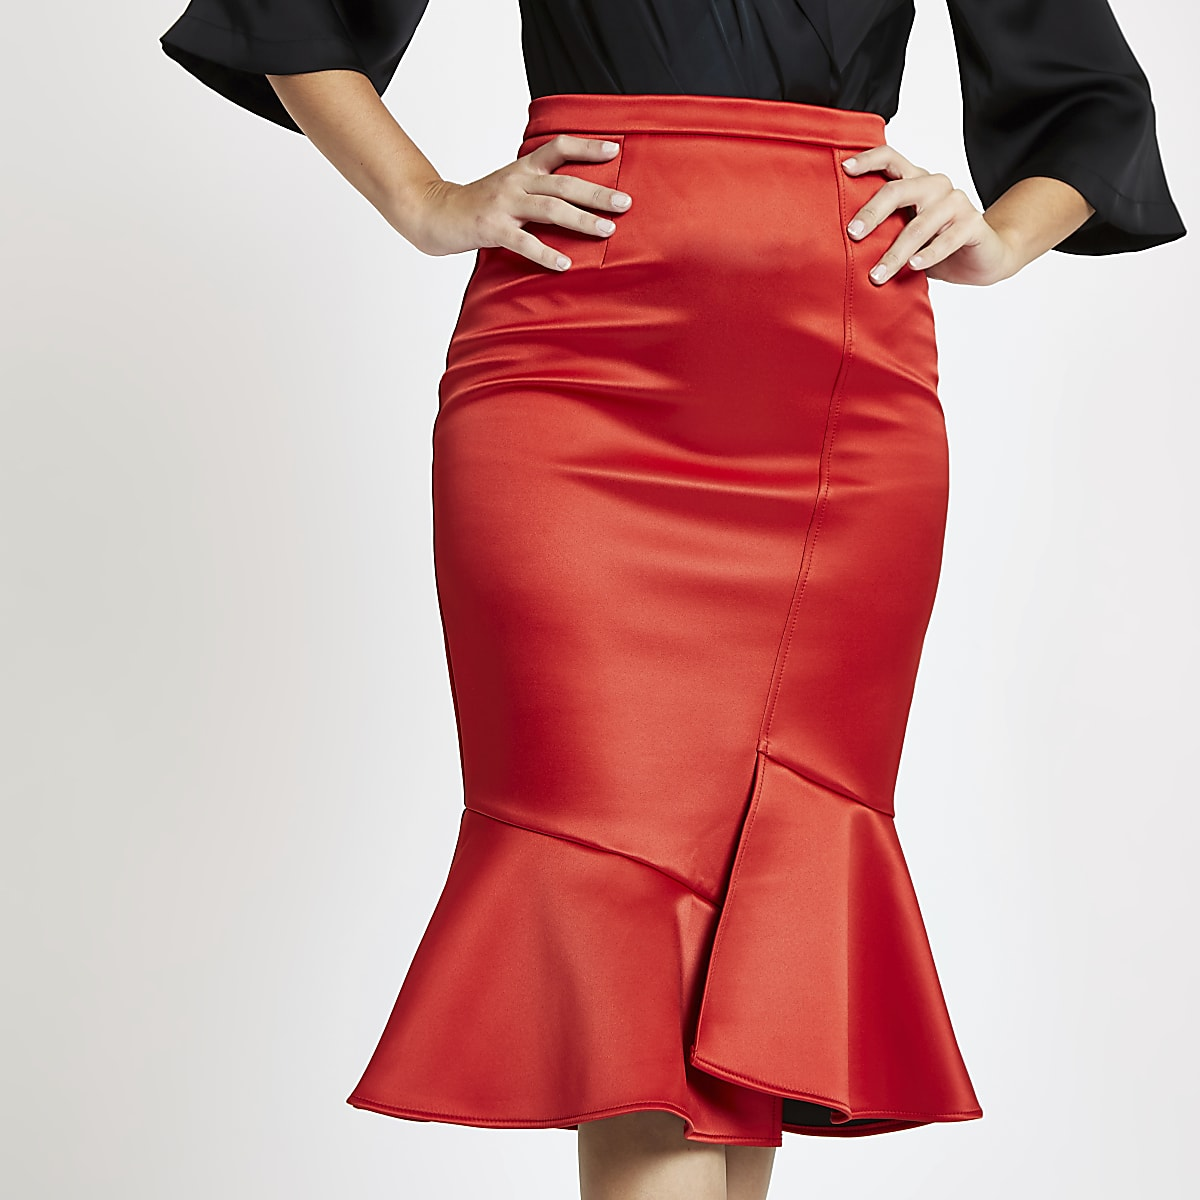 1226ff44f Red satin frill hem pencil skirt - Midi Skirts - Skirts - women